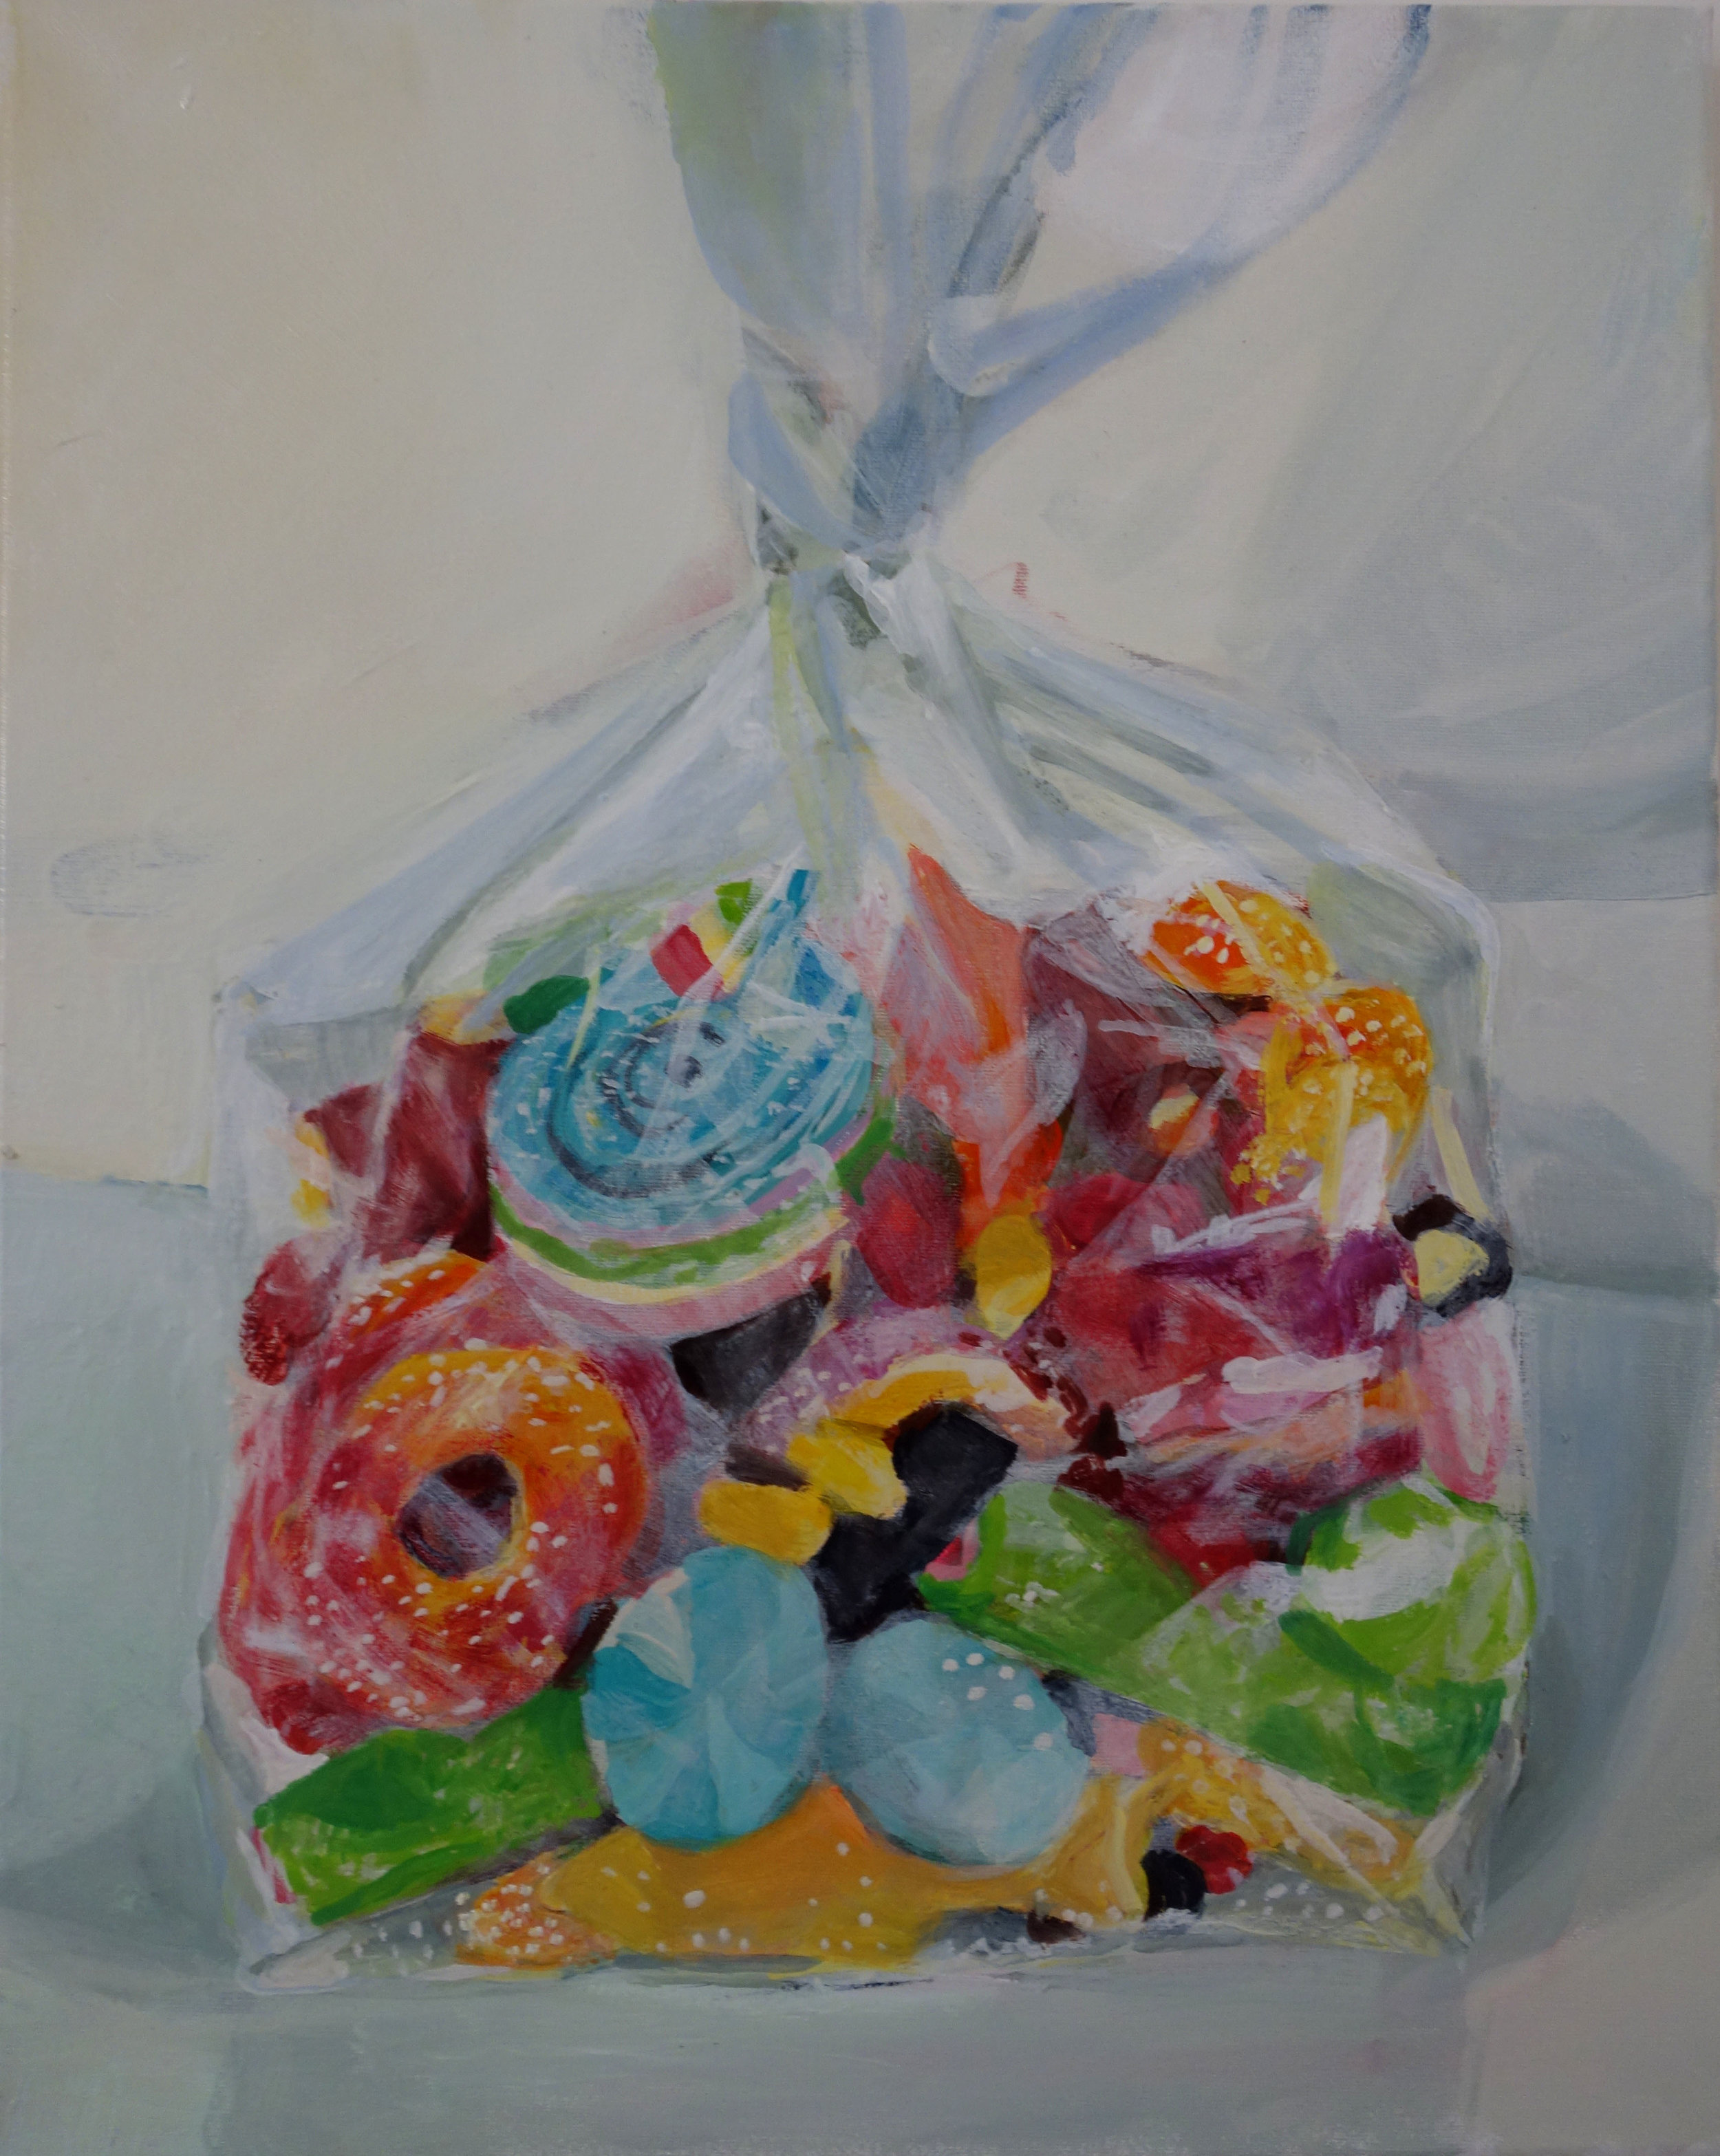 Candy Bag Dinner   16 X 20 IN  Oil on canvas